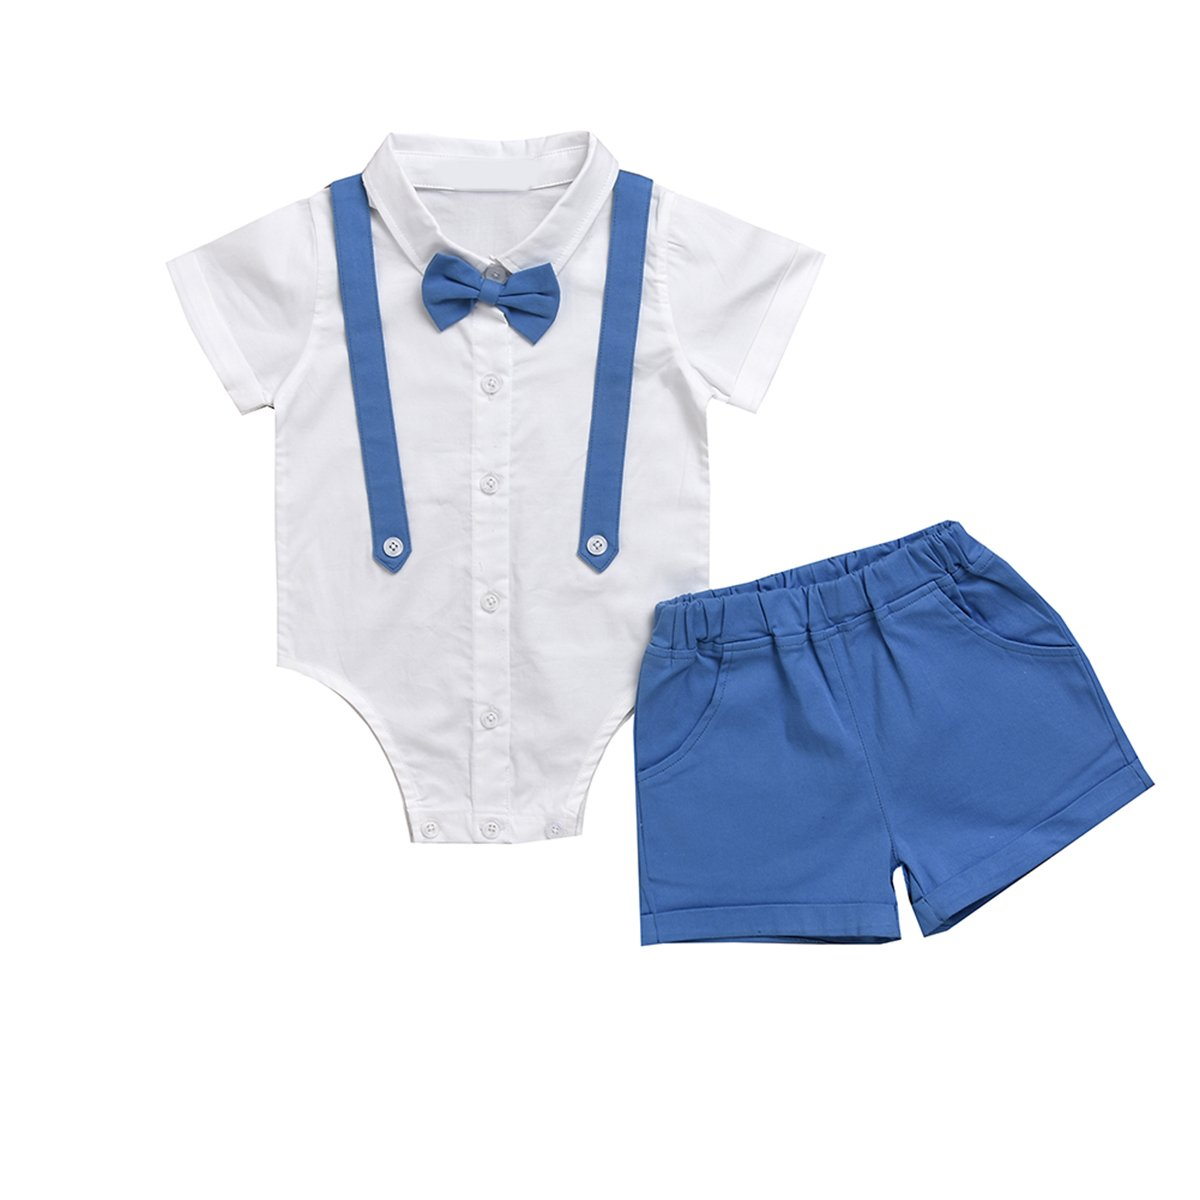 1d933cd1d Puseky Baby Boys Gentleman Suit Bow Tie Romper Shirt + Shorts Formal ...